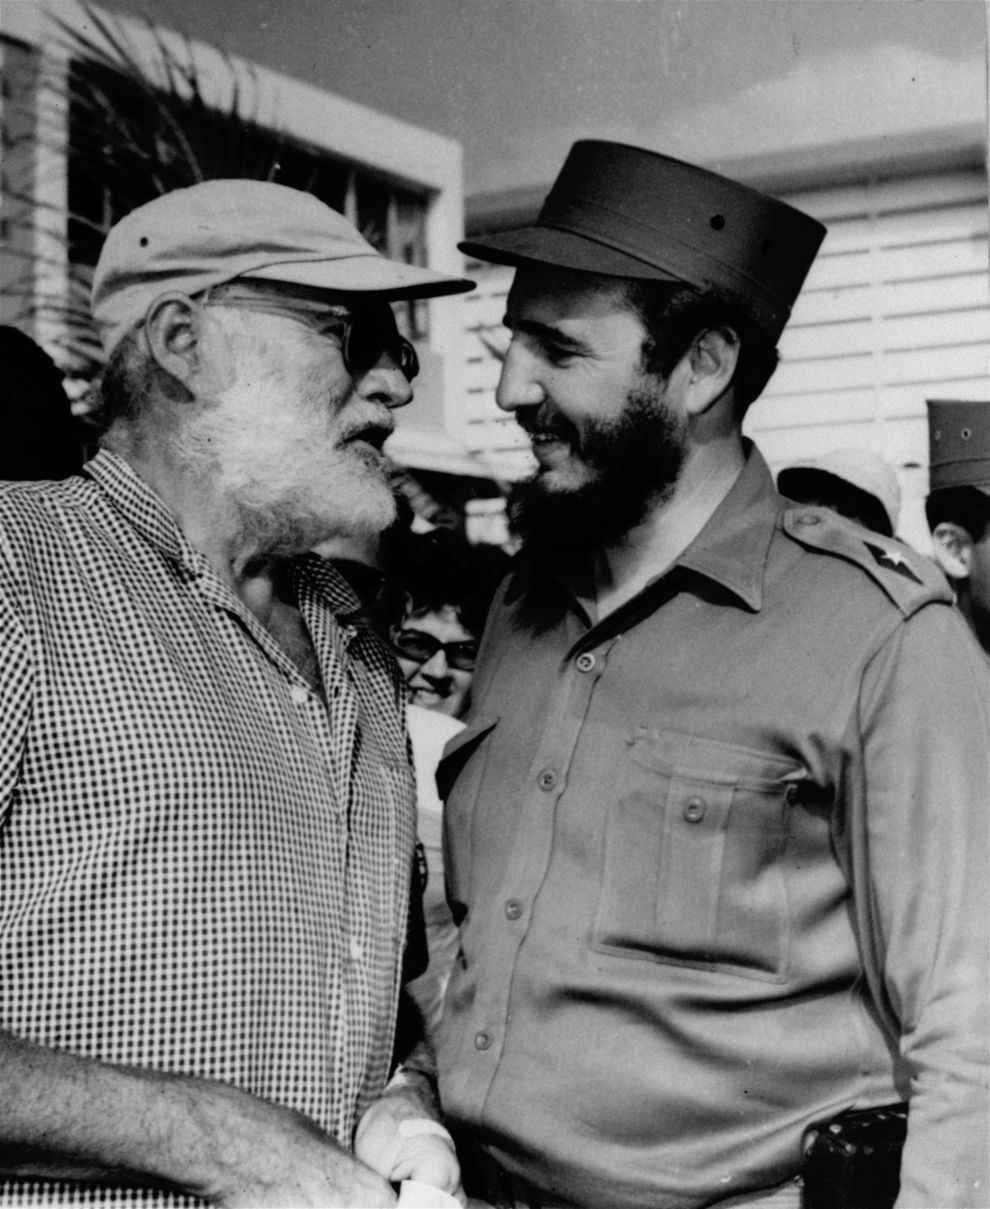 Ernest Hemingway and Cuban Prime Minister Fidel Castro exchange pleasantries at seaside after Castro won the individual championship in the annual Hemingway Anglers Tournament on May 15, 1960.  Castro caught five fish weighing 286 pounds to take the crown.  Hemingway had a bad day failing to land any. (AP Photo/str)